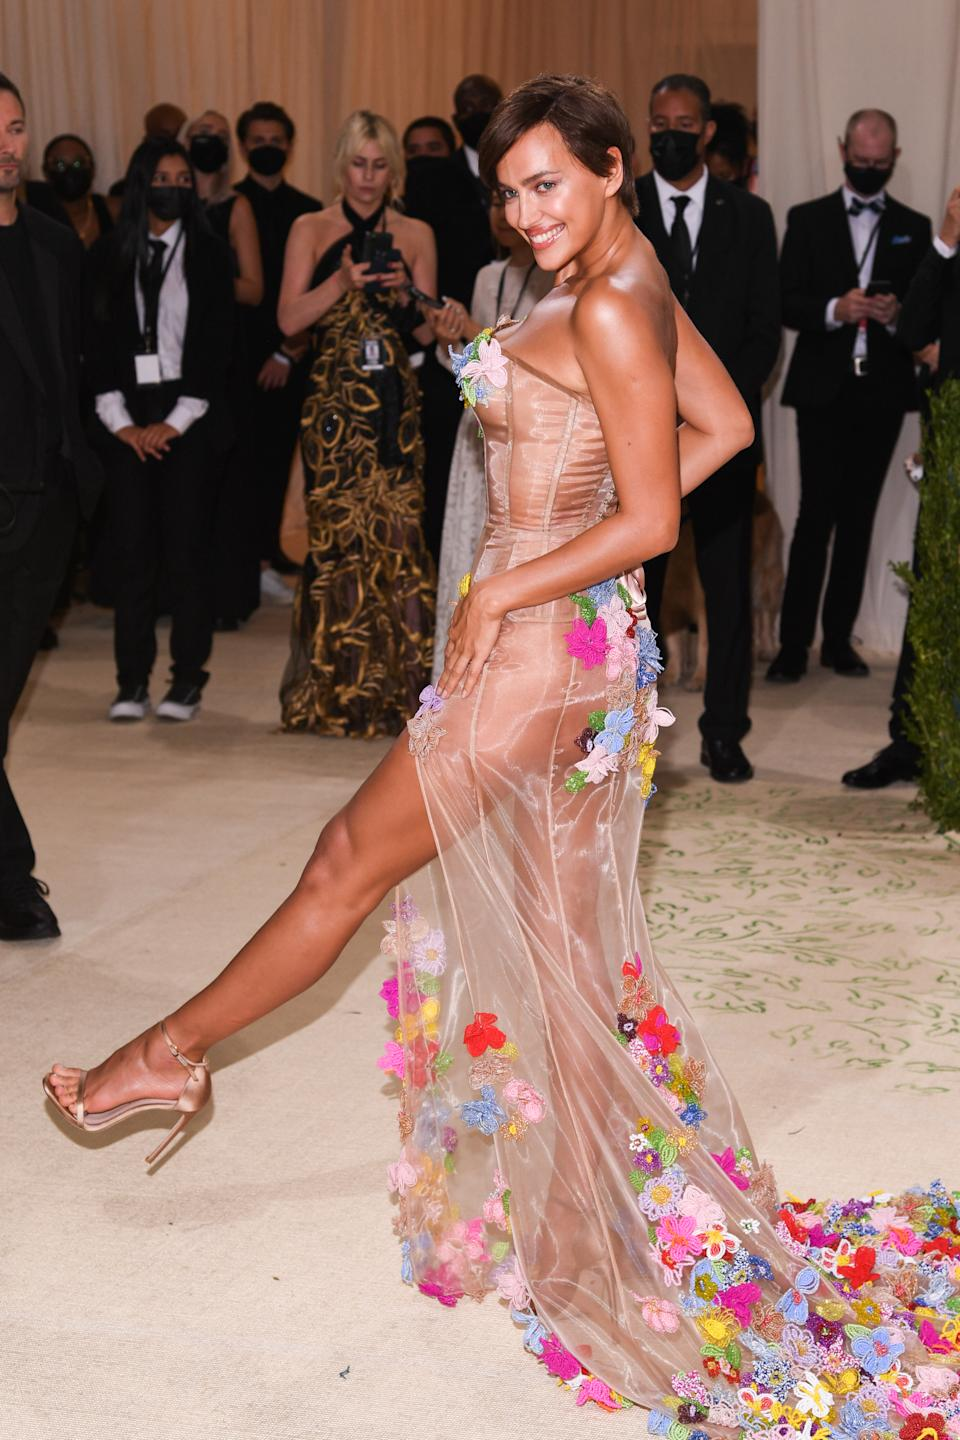 Irina Shayk walking on the red carpet at the 2021 Metropolitan Museum of Art Costume Institute Gala celebrating the opening of the exhibition titled In America: A Lexicon of Fashion held at the Metropolitan Museum of Art in New York, NY on September 13, 2021. (Photo by Anthony Behar/Sipa USA)